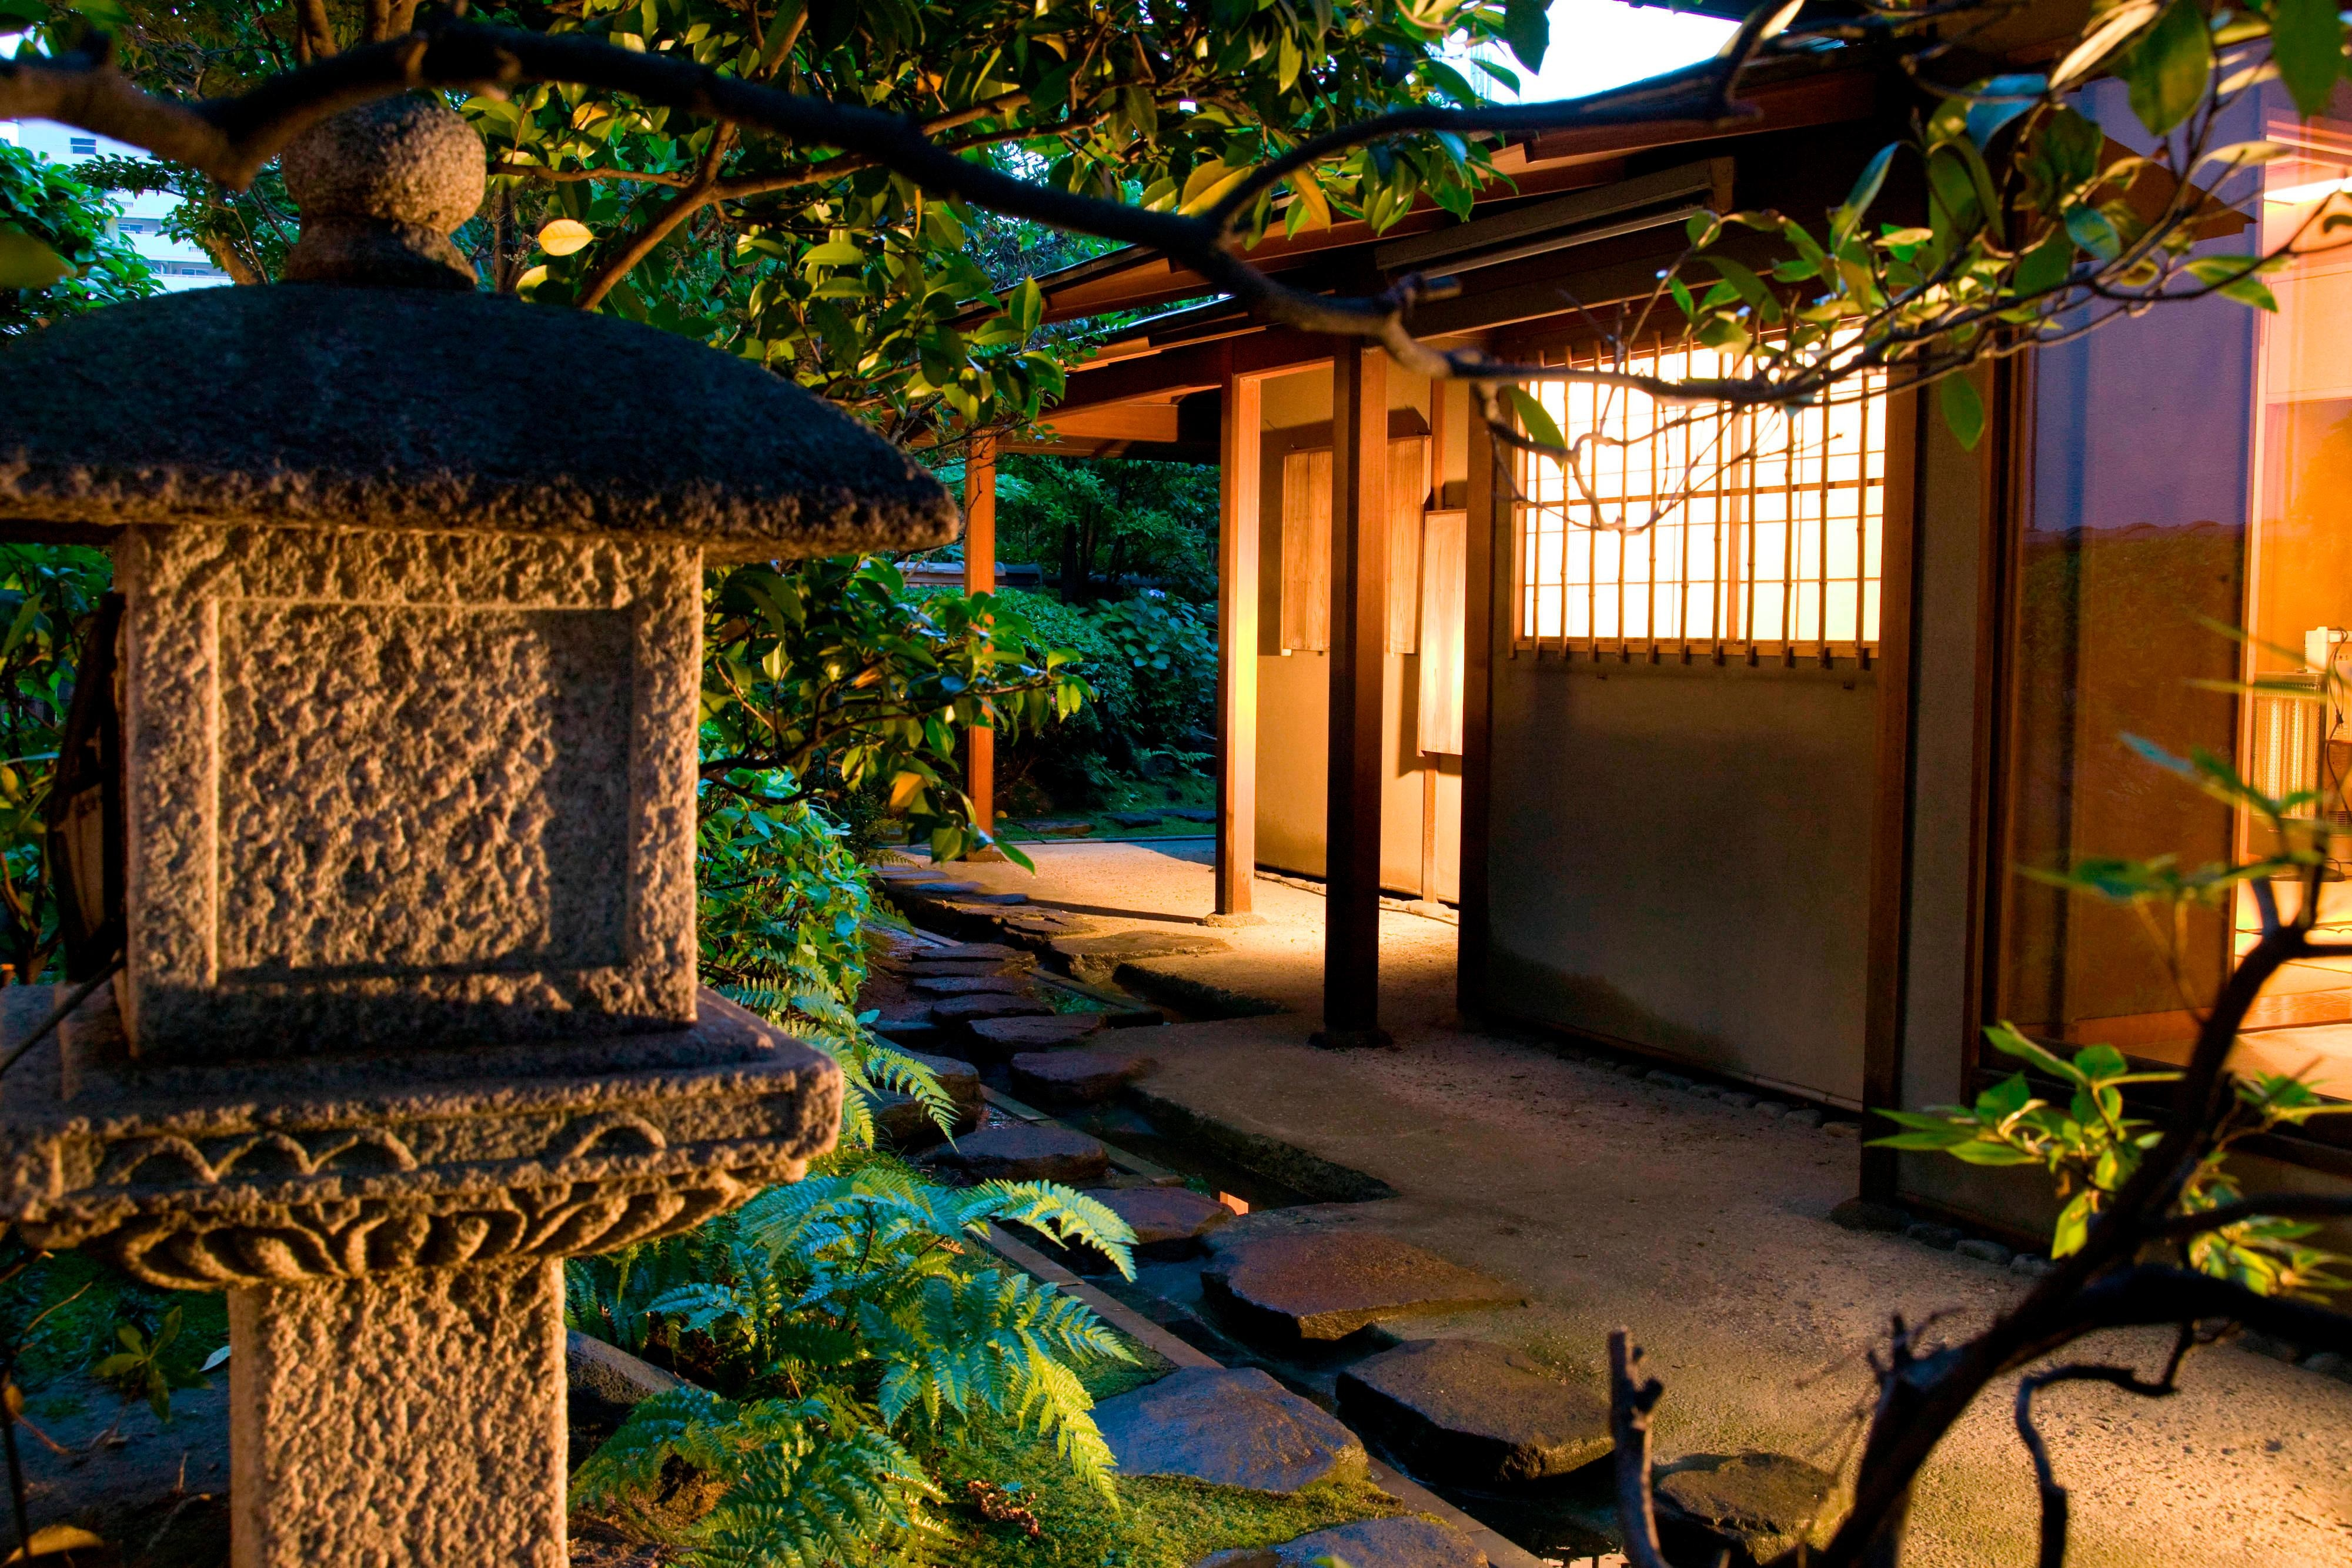 Urakuan Traditional Japanese Tea CeremonyHouse